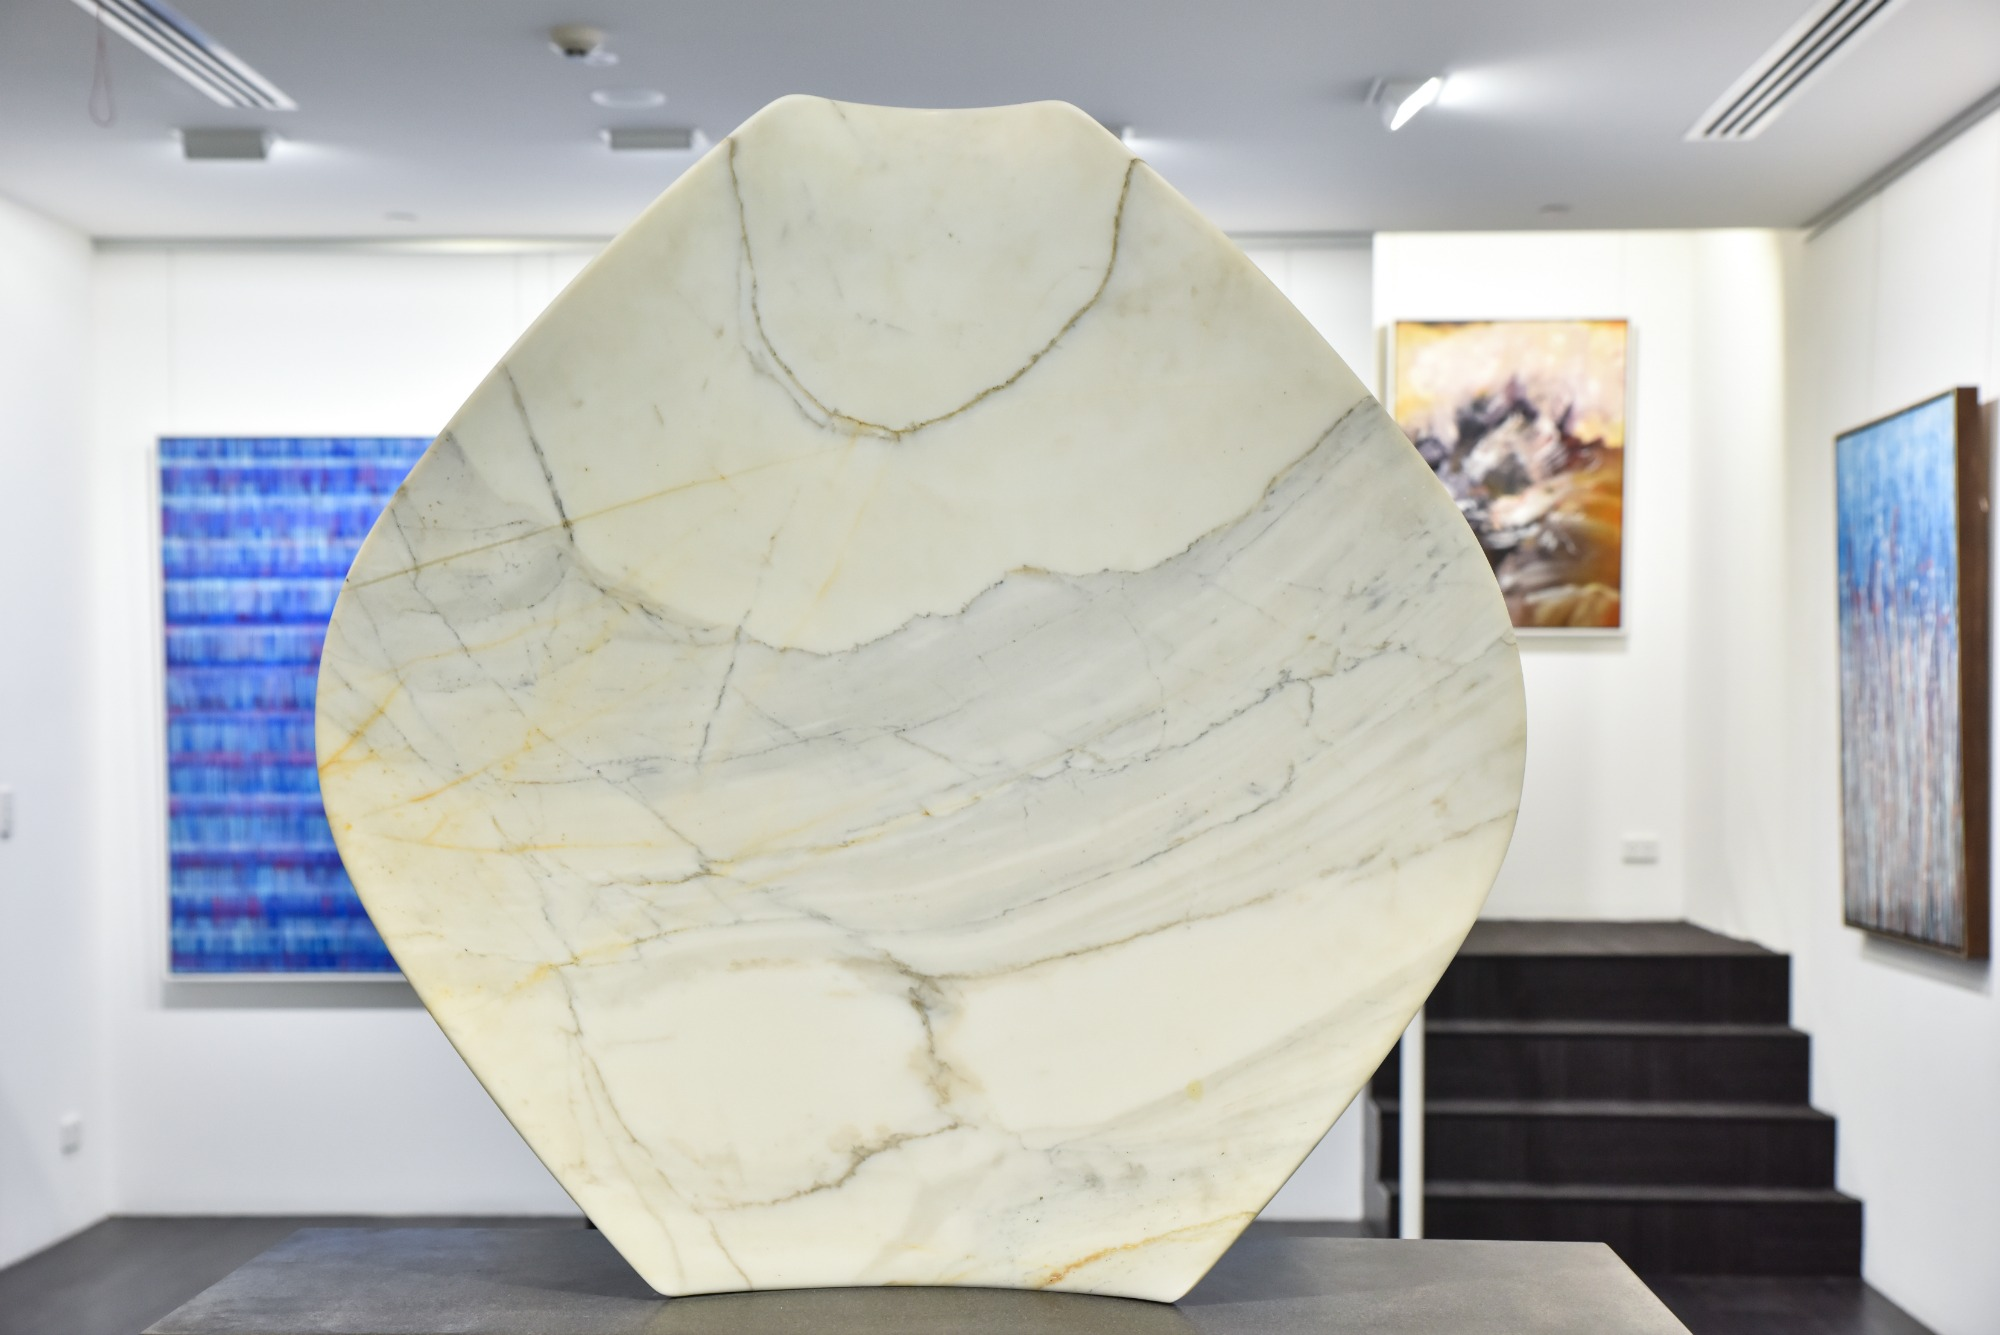 Above: Sculpture by Jane Valentine,  Shielding II , 2014, Stauario Marble on granite base, 100 (h) x 90 (w) x 25 (d)cm, P.O.A